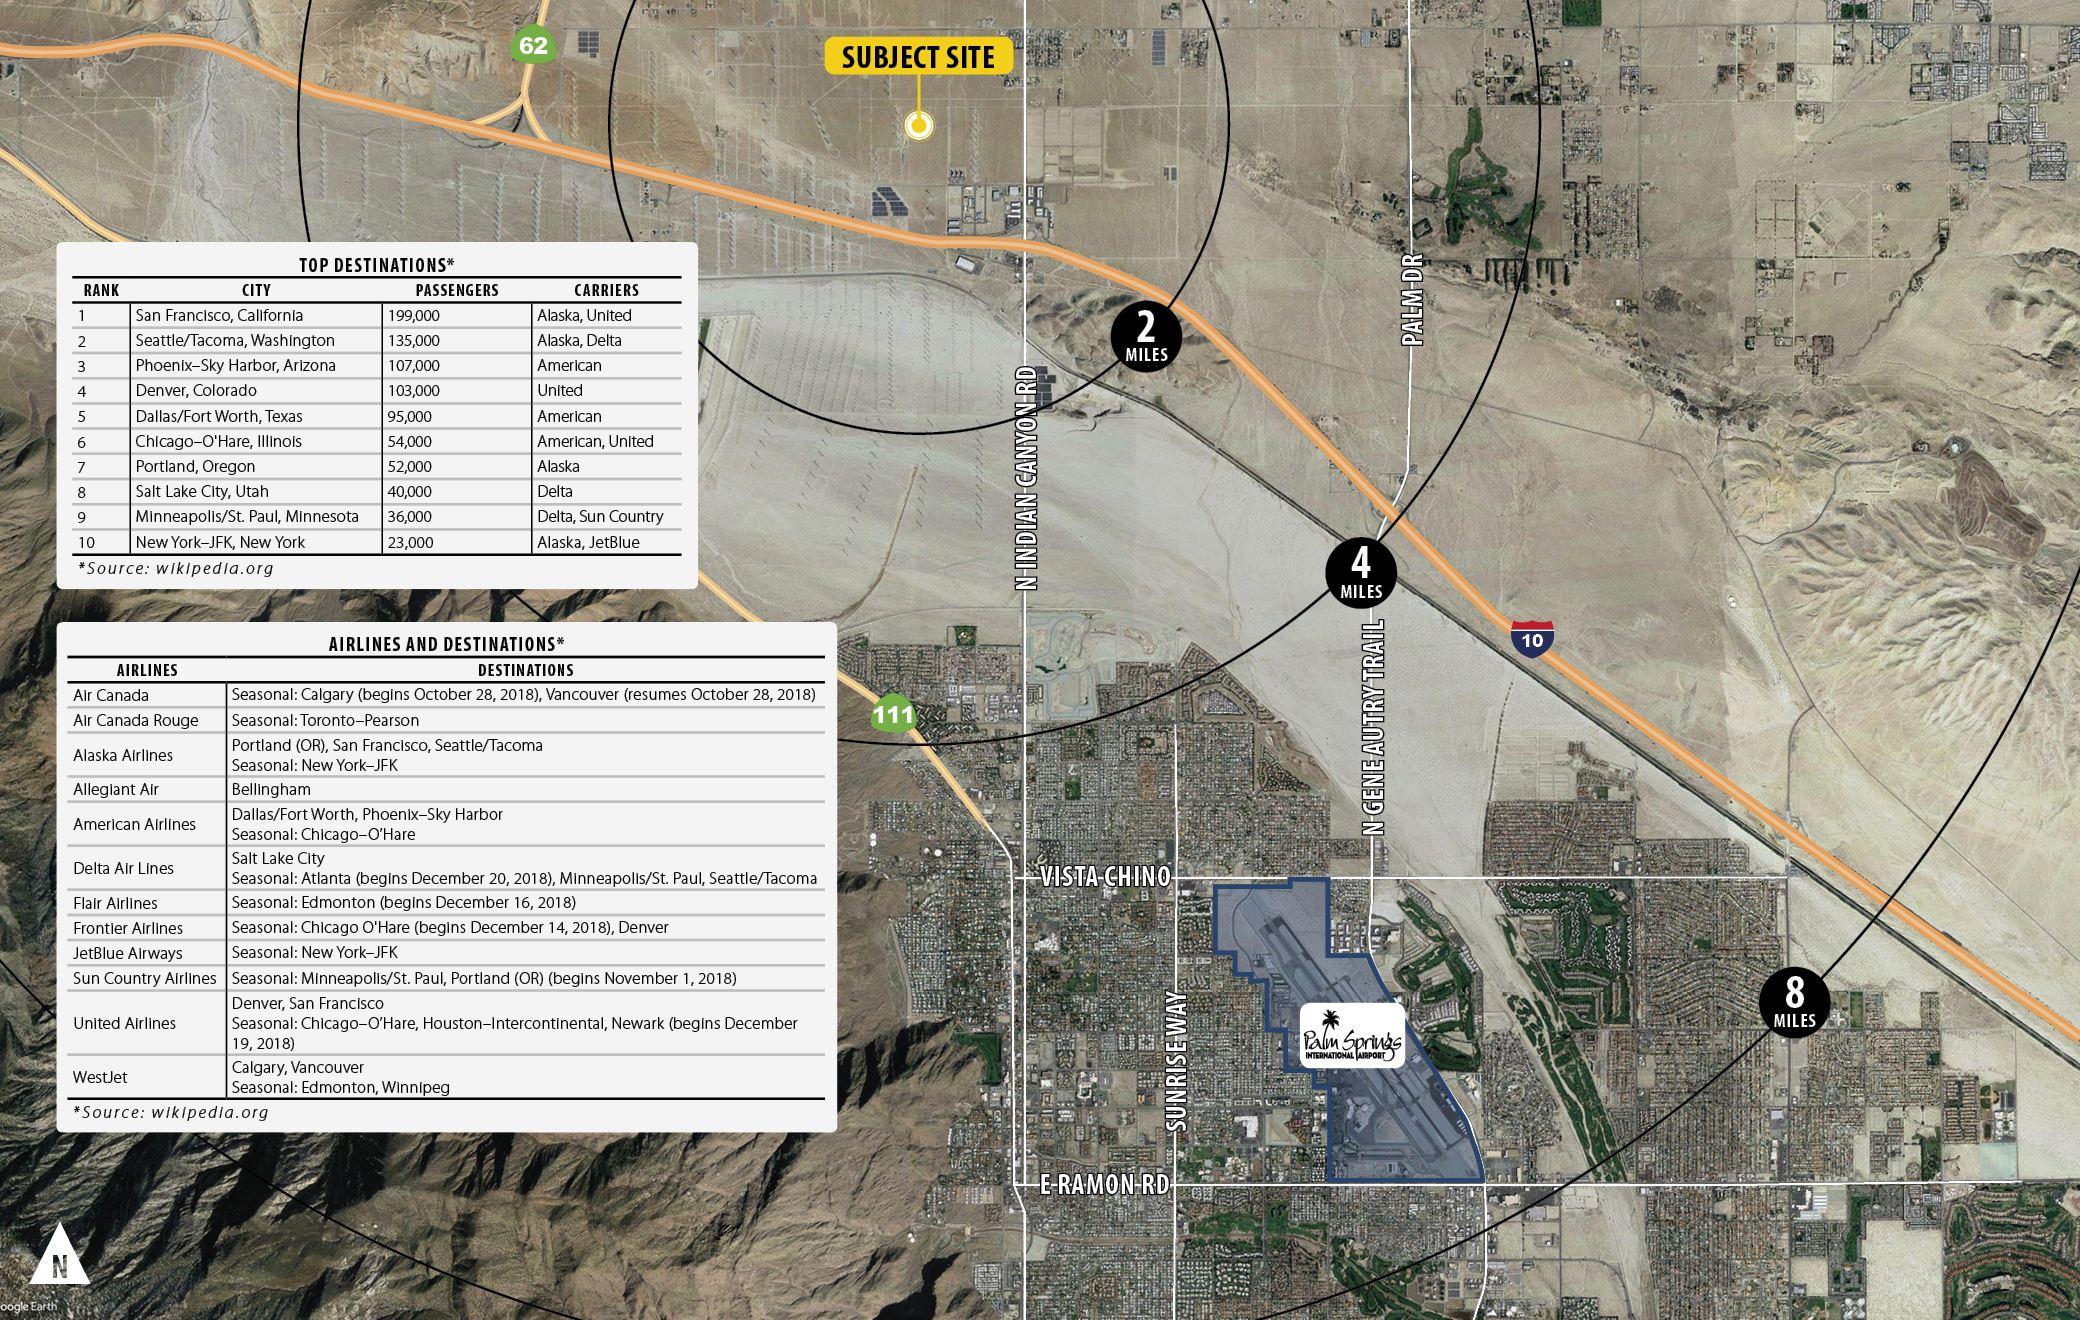 20 Acres – Palm Springs6